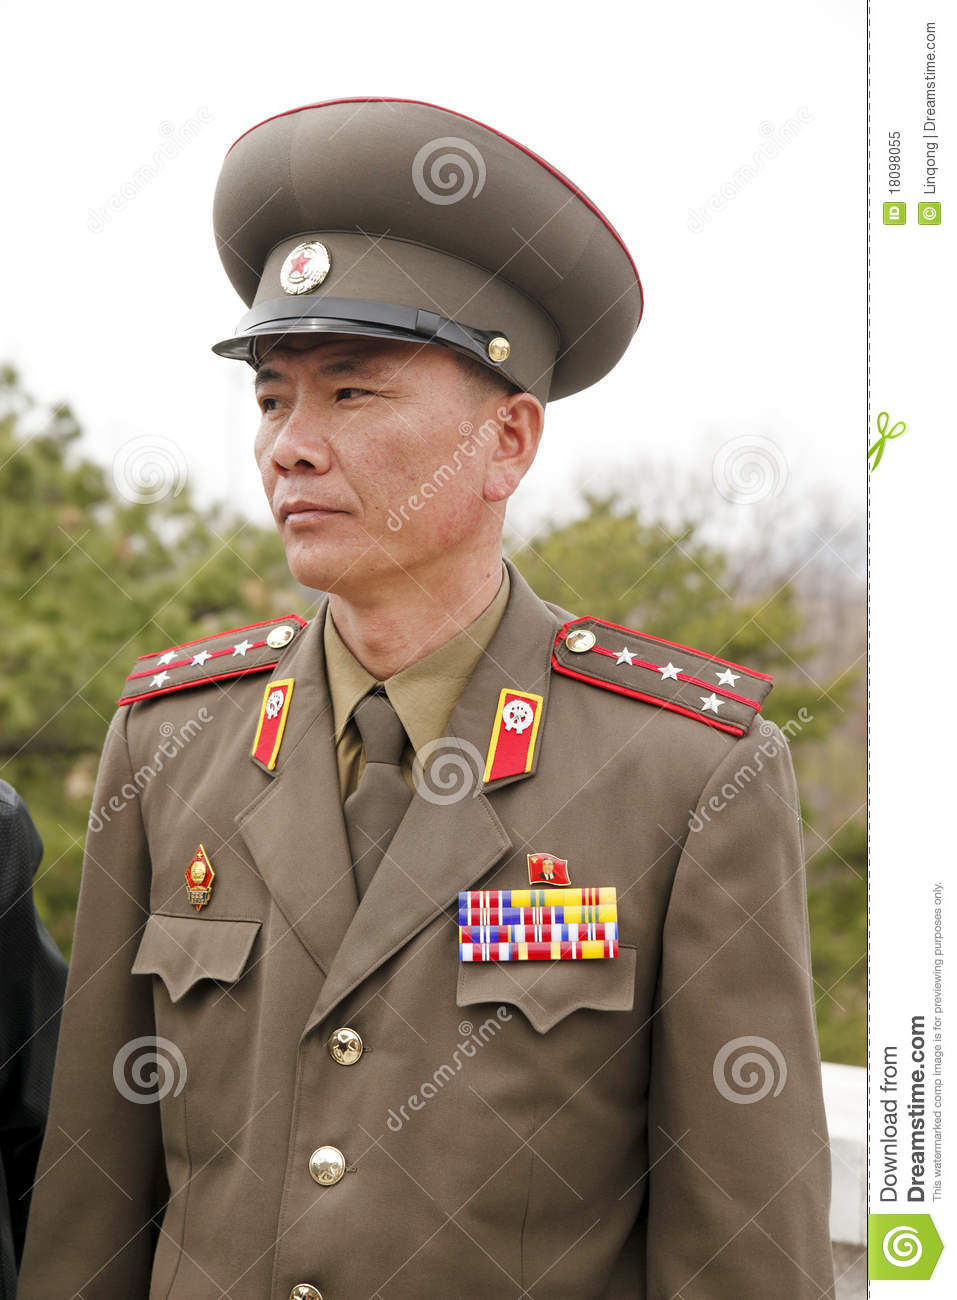 North Korean Army Uniforms by bar27262 on DeviantArt